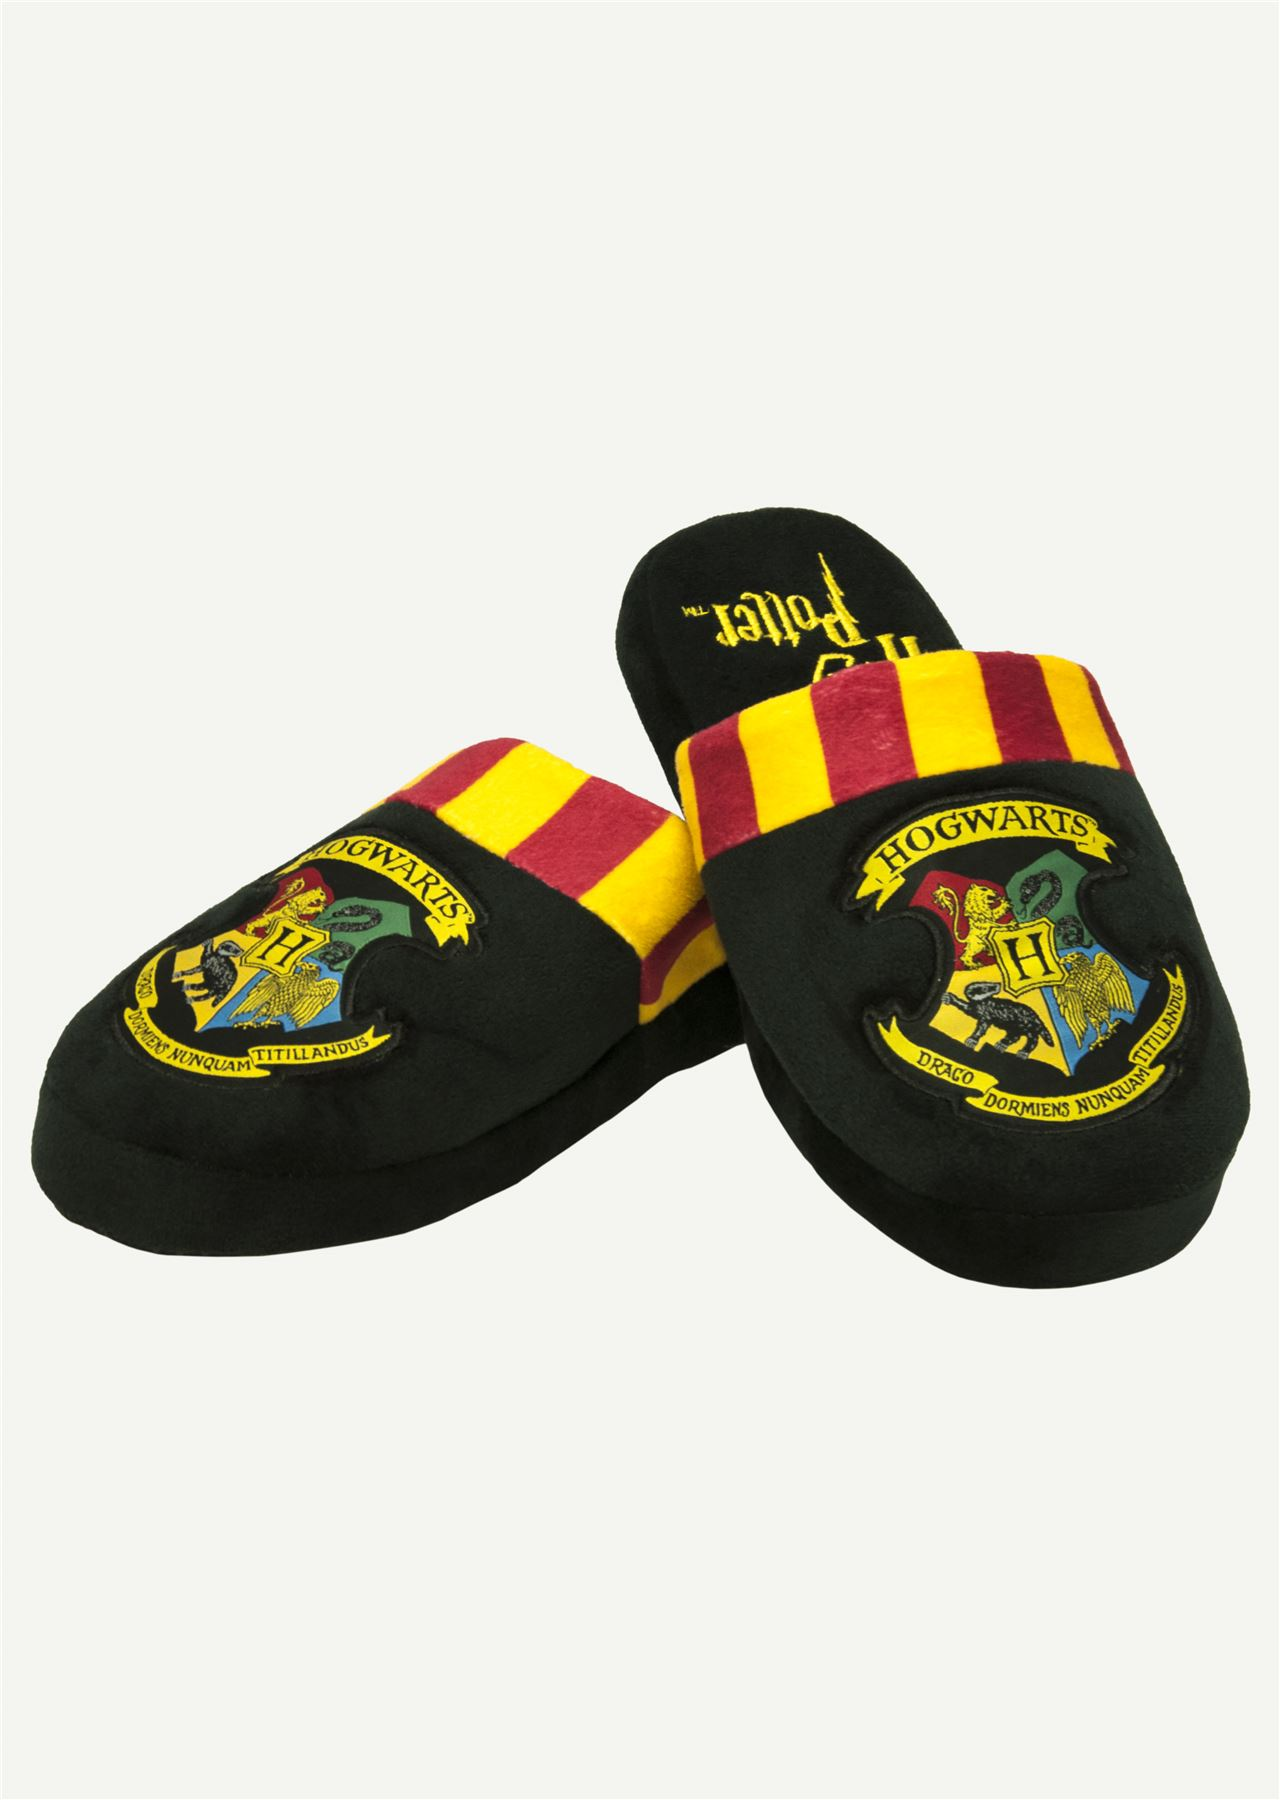 f4eaeb8b232 Mens Harry Potter Hogwarts Mule Slippers Large UK 8-10 Official Merchandise